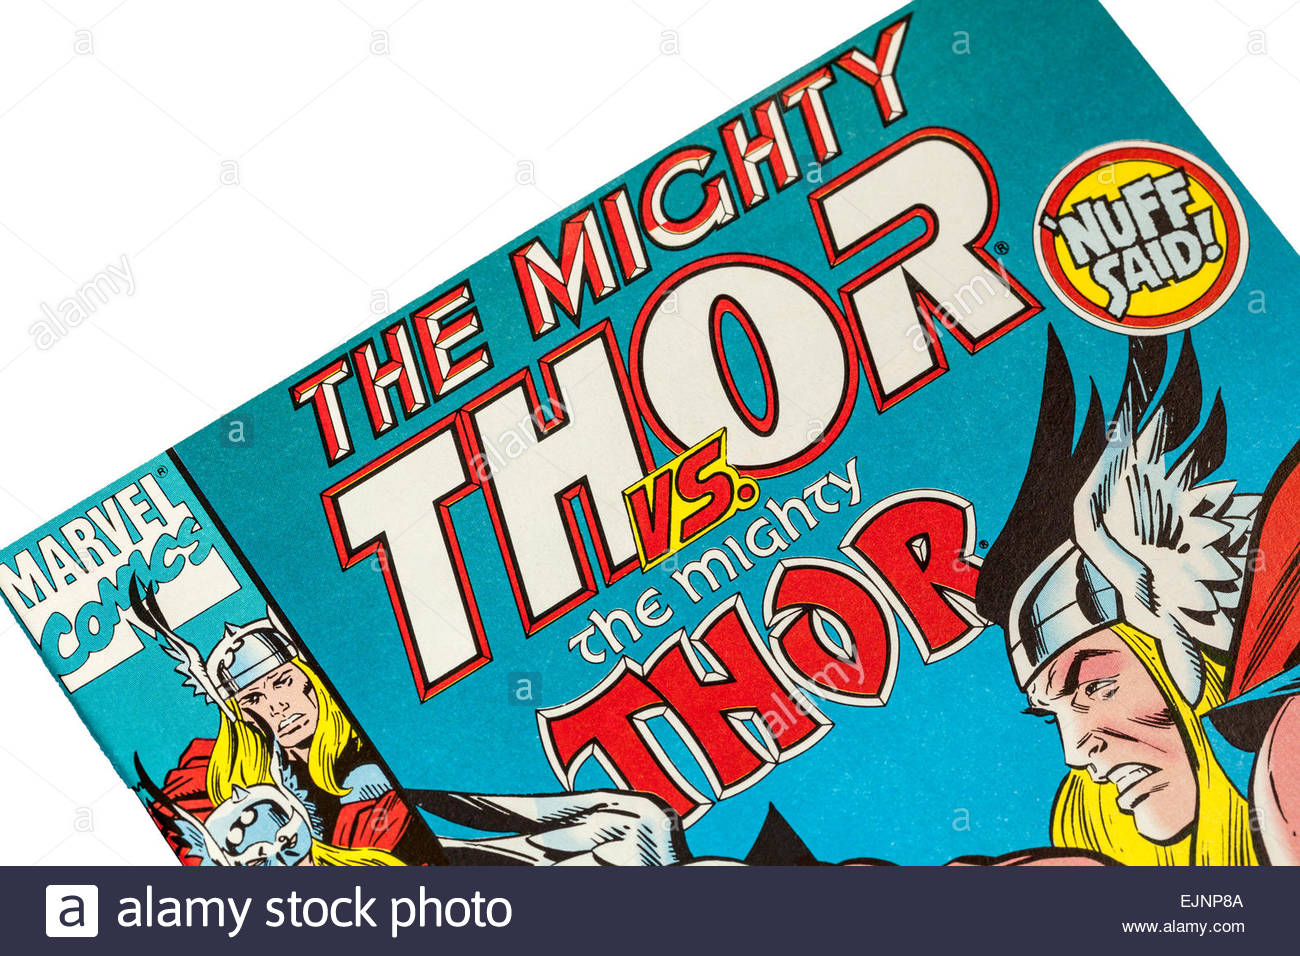 The Mighty Thor - Marvel Comics - Stock Image